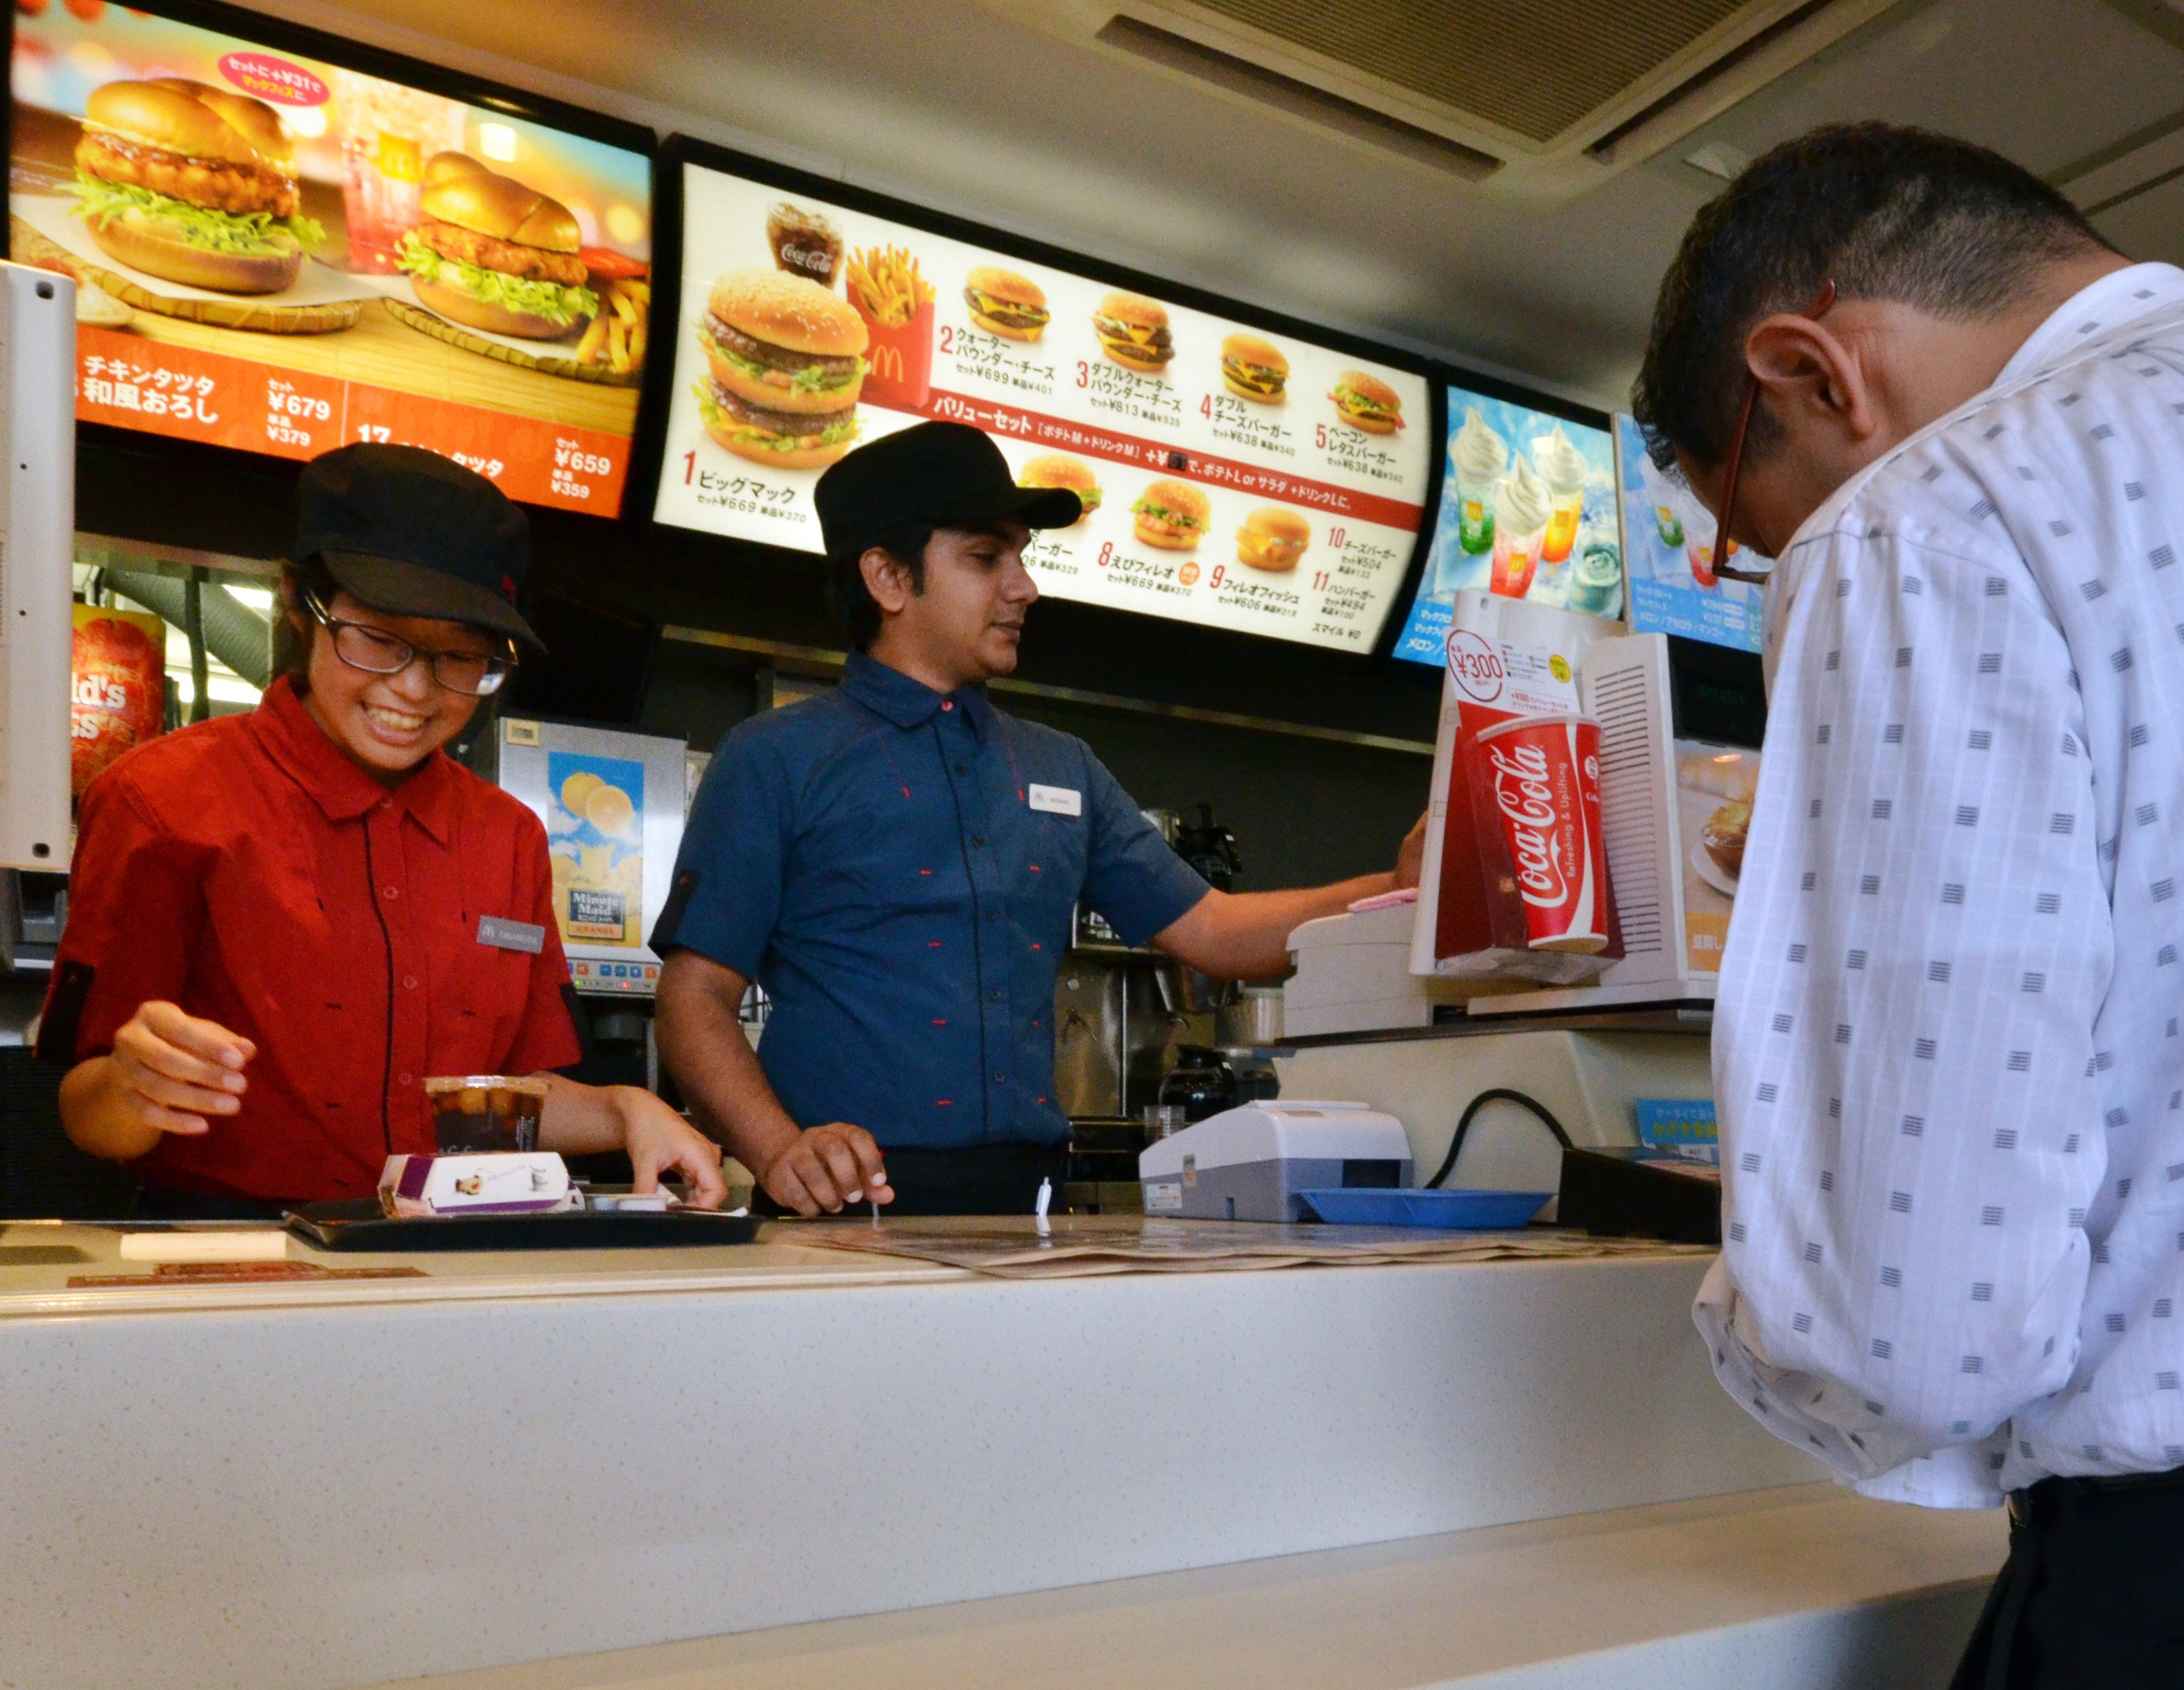 JAPAN-CHINA-US-FOOD-SAFETY-MCDONALD'S